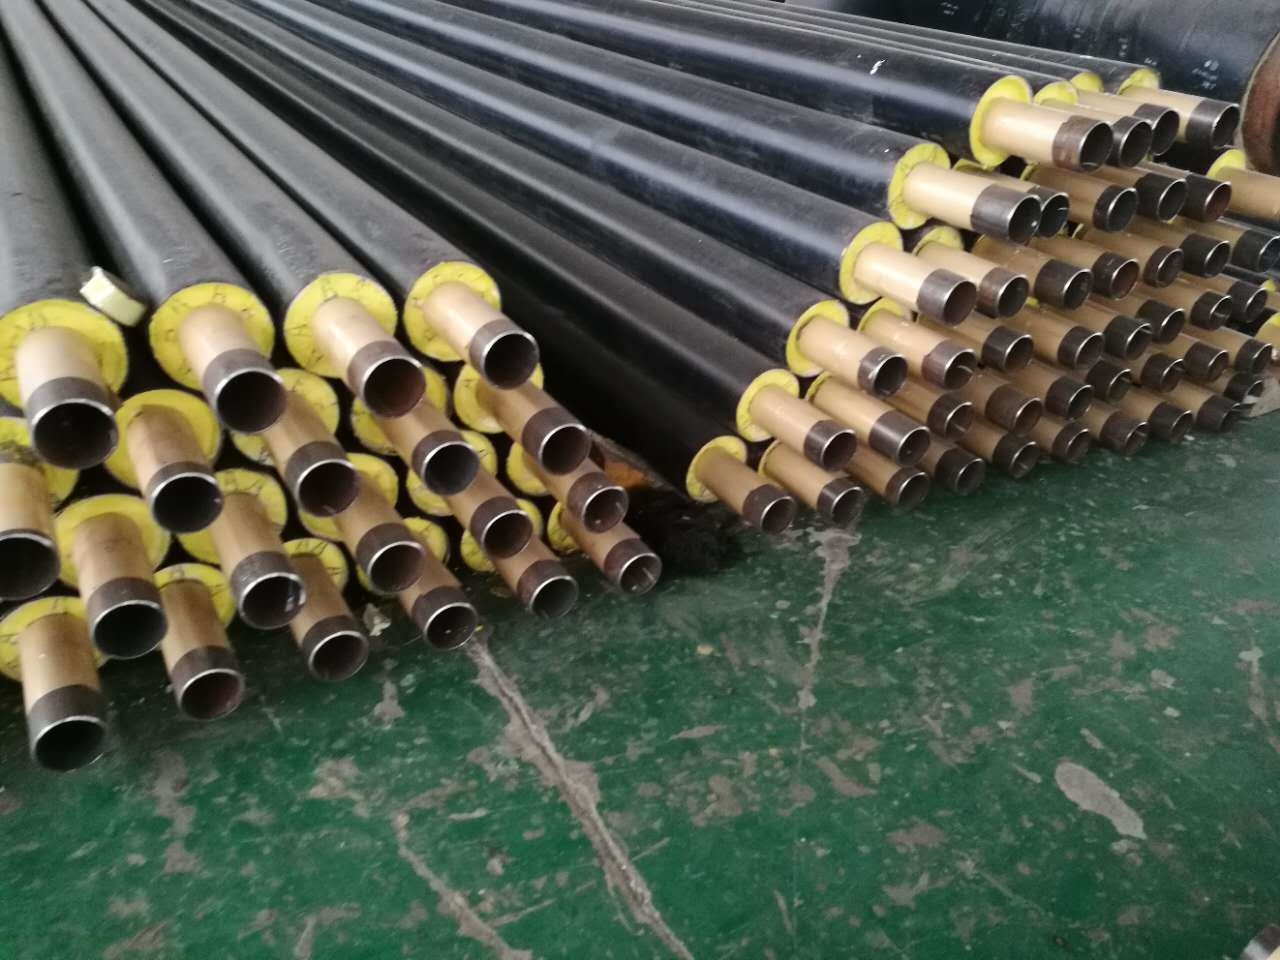 Pipe Insulation Material with Polyurethane Foam and HDPE Protection Outer